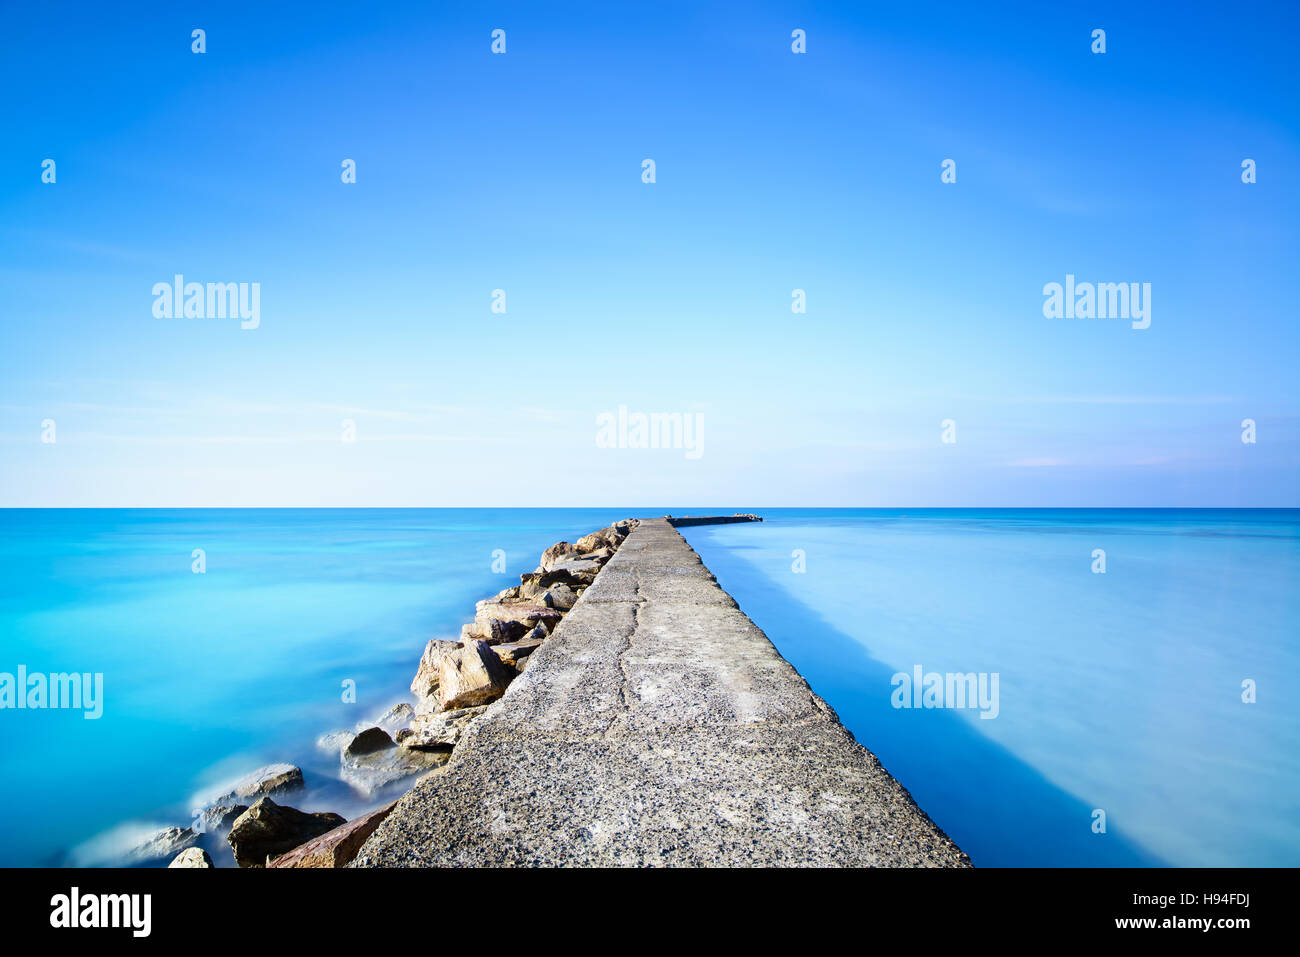 Concrete and rocks pier or jetty on a blue ocean water. Long Exposure photography - Stock Image